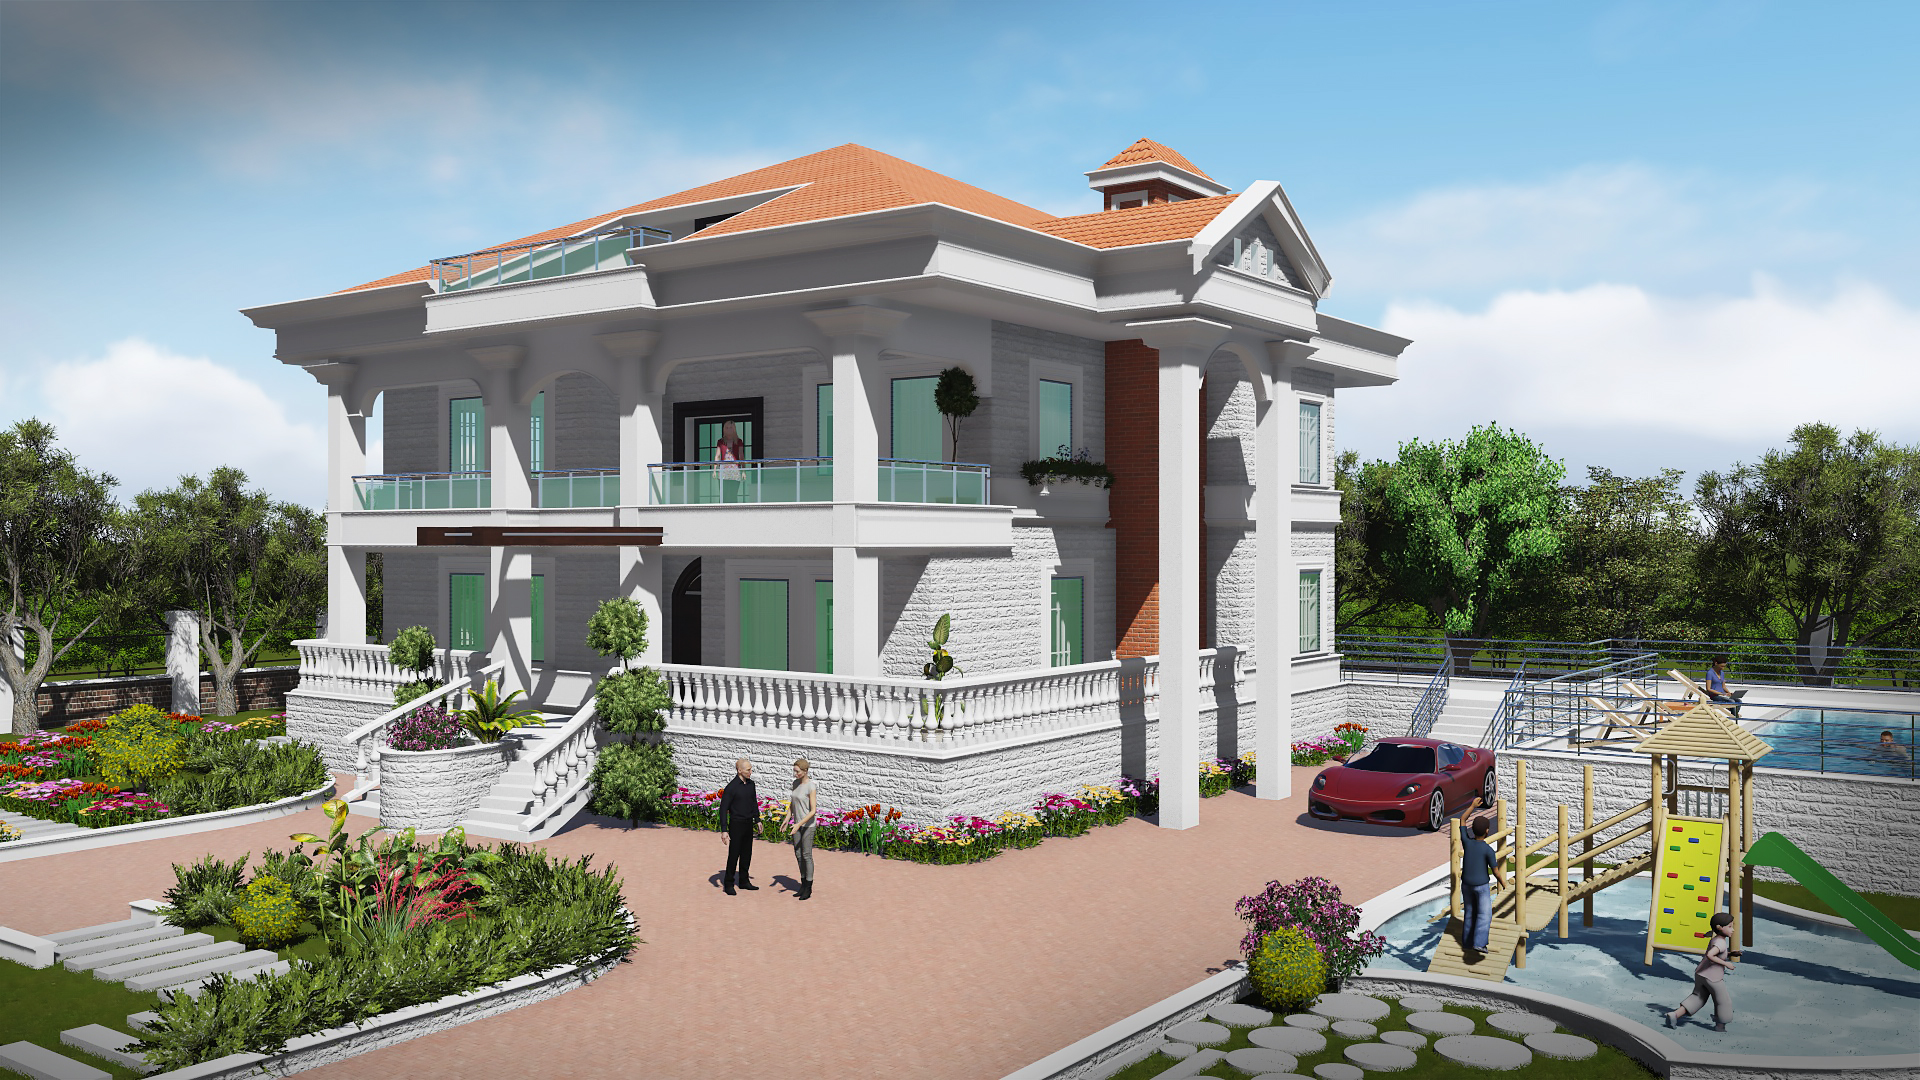 Architecture Design for Bassam Villa in beqaa, Lebanon.